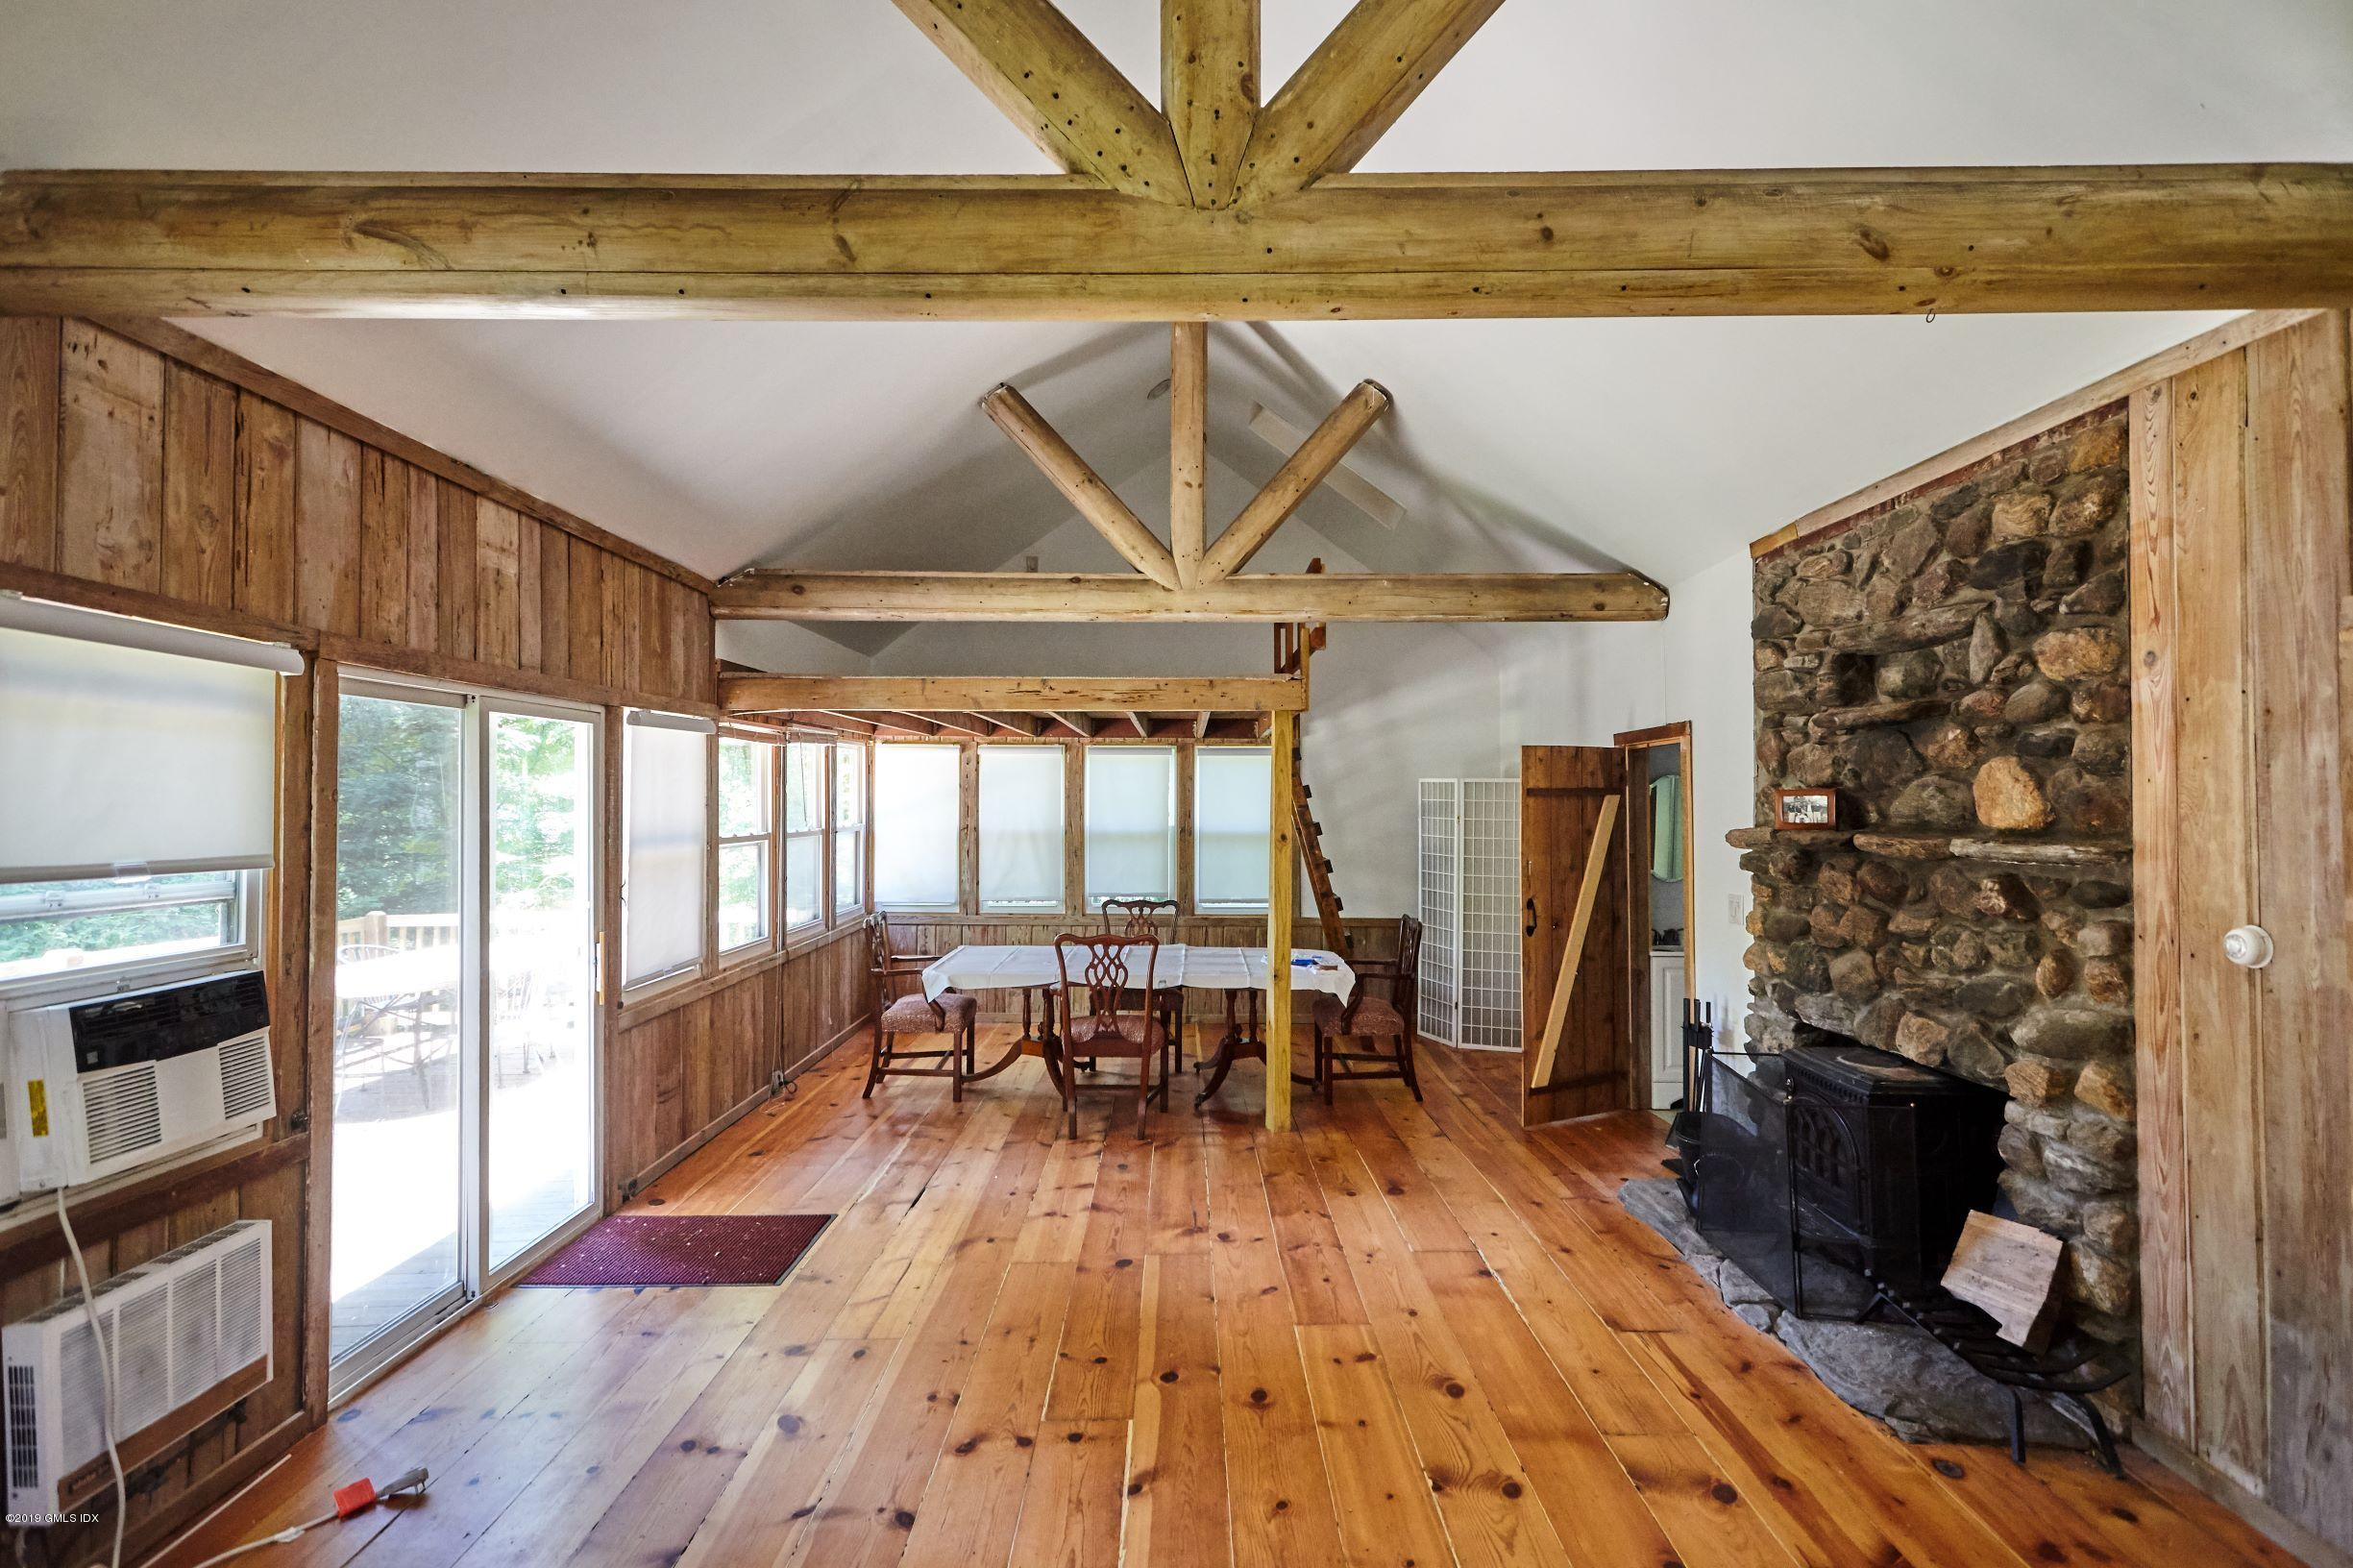 6 Carpenters Brook Rd (cottage), Greenwich, CT 06831